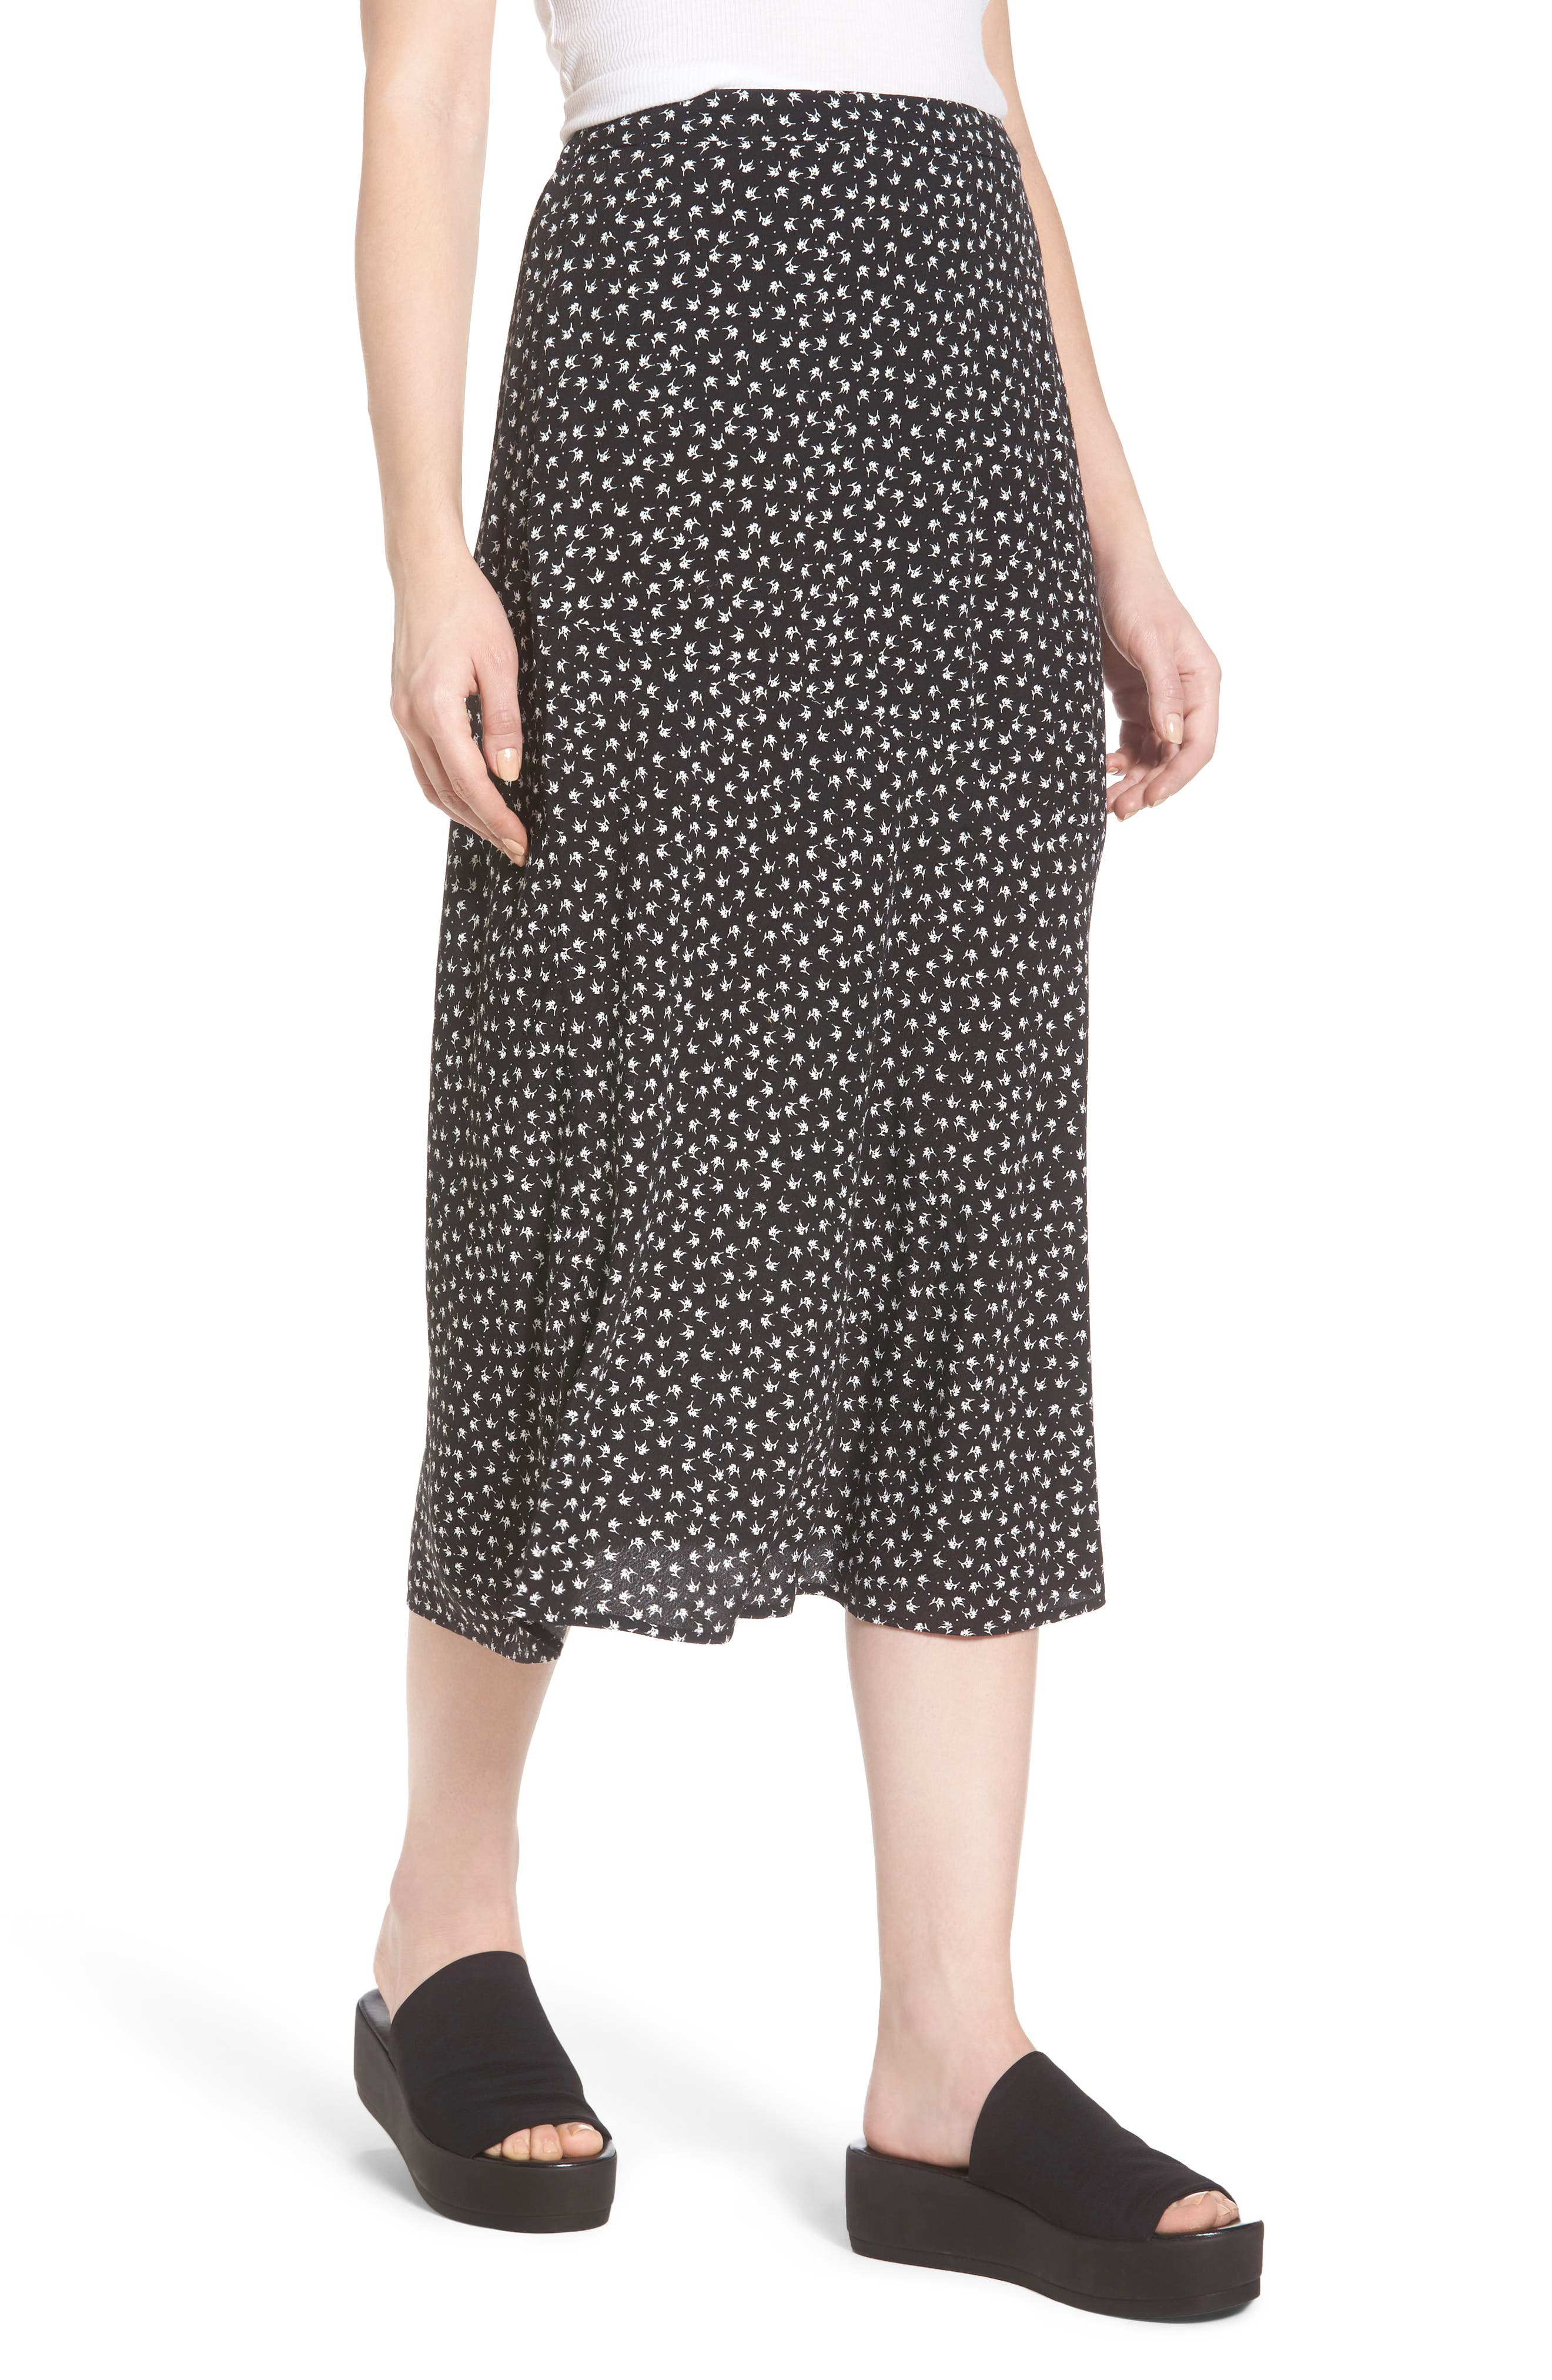 Print Bias Cut Skirt,                             Alternate thumbnail 4, color,                             Black Tsd Stem